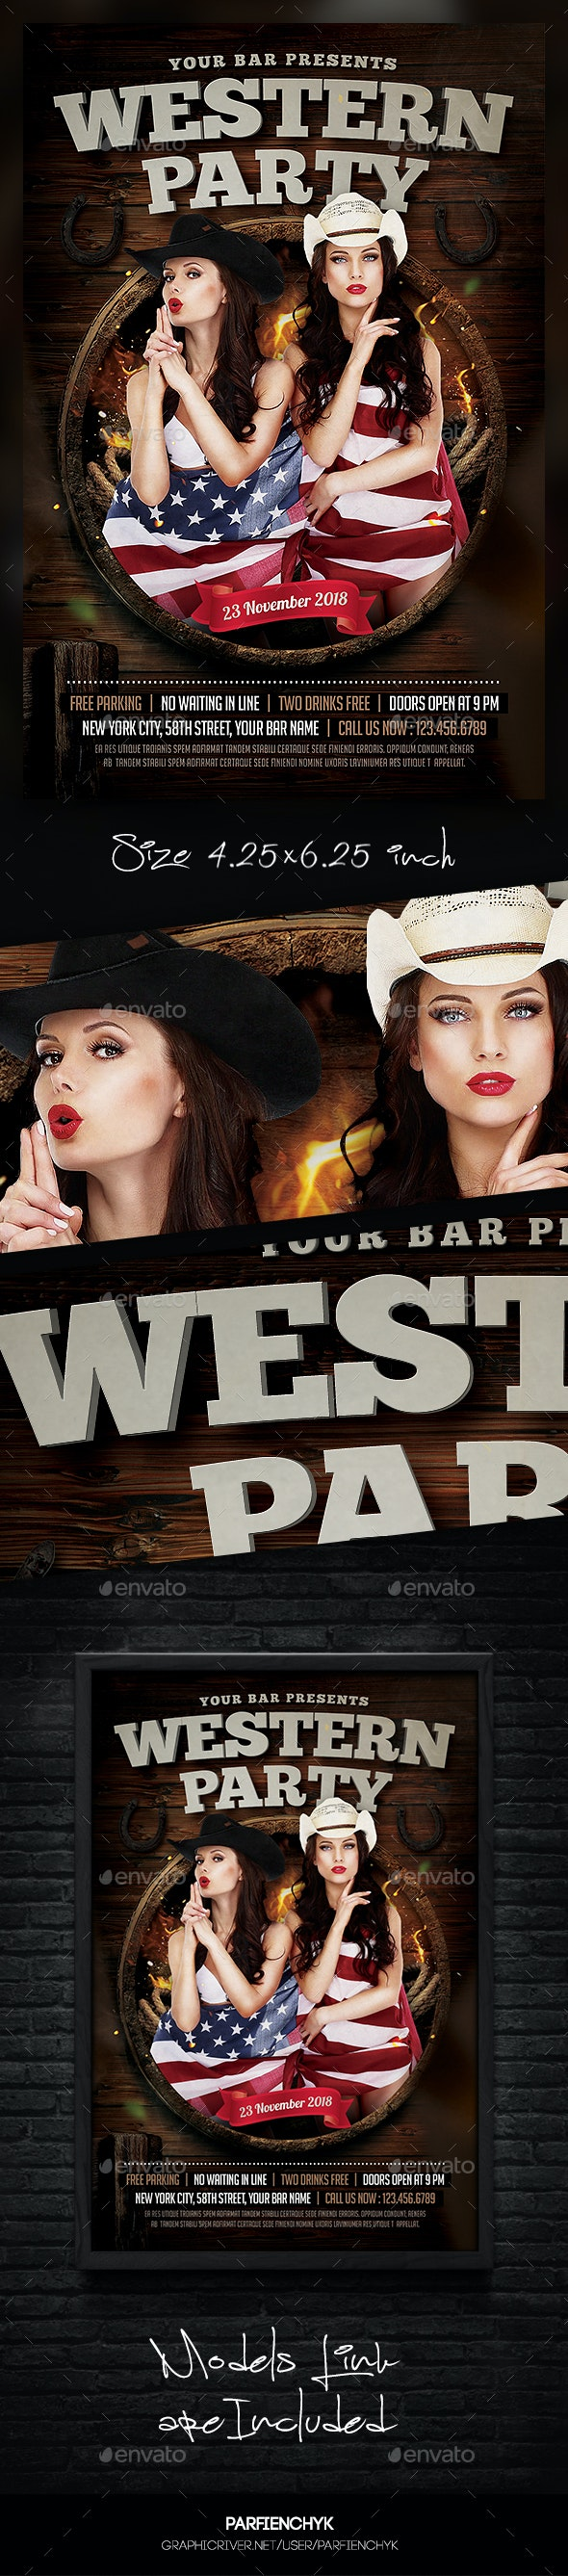 Western Party Flyer Template - Clubs & Parties Events